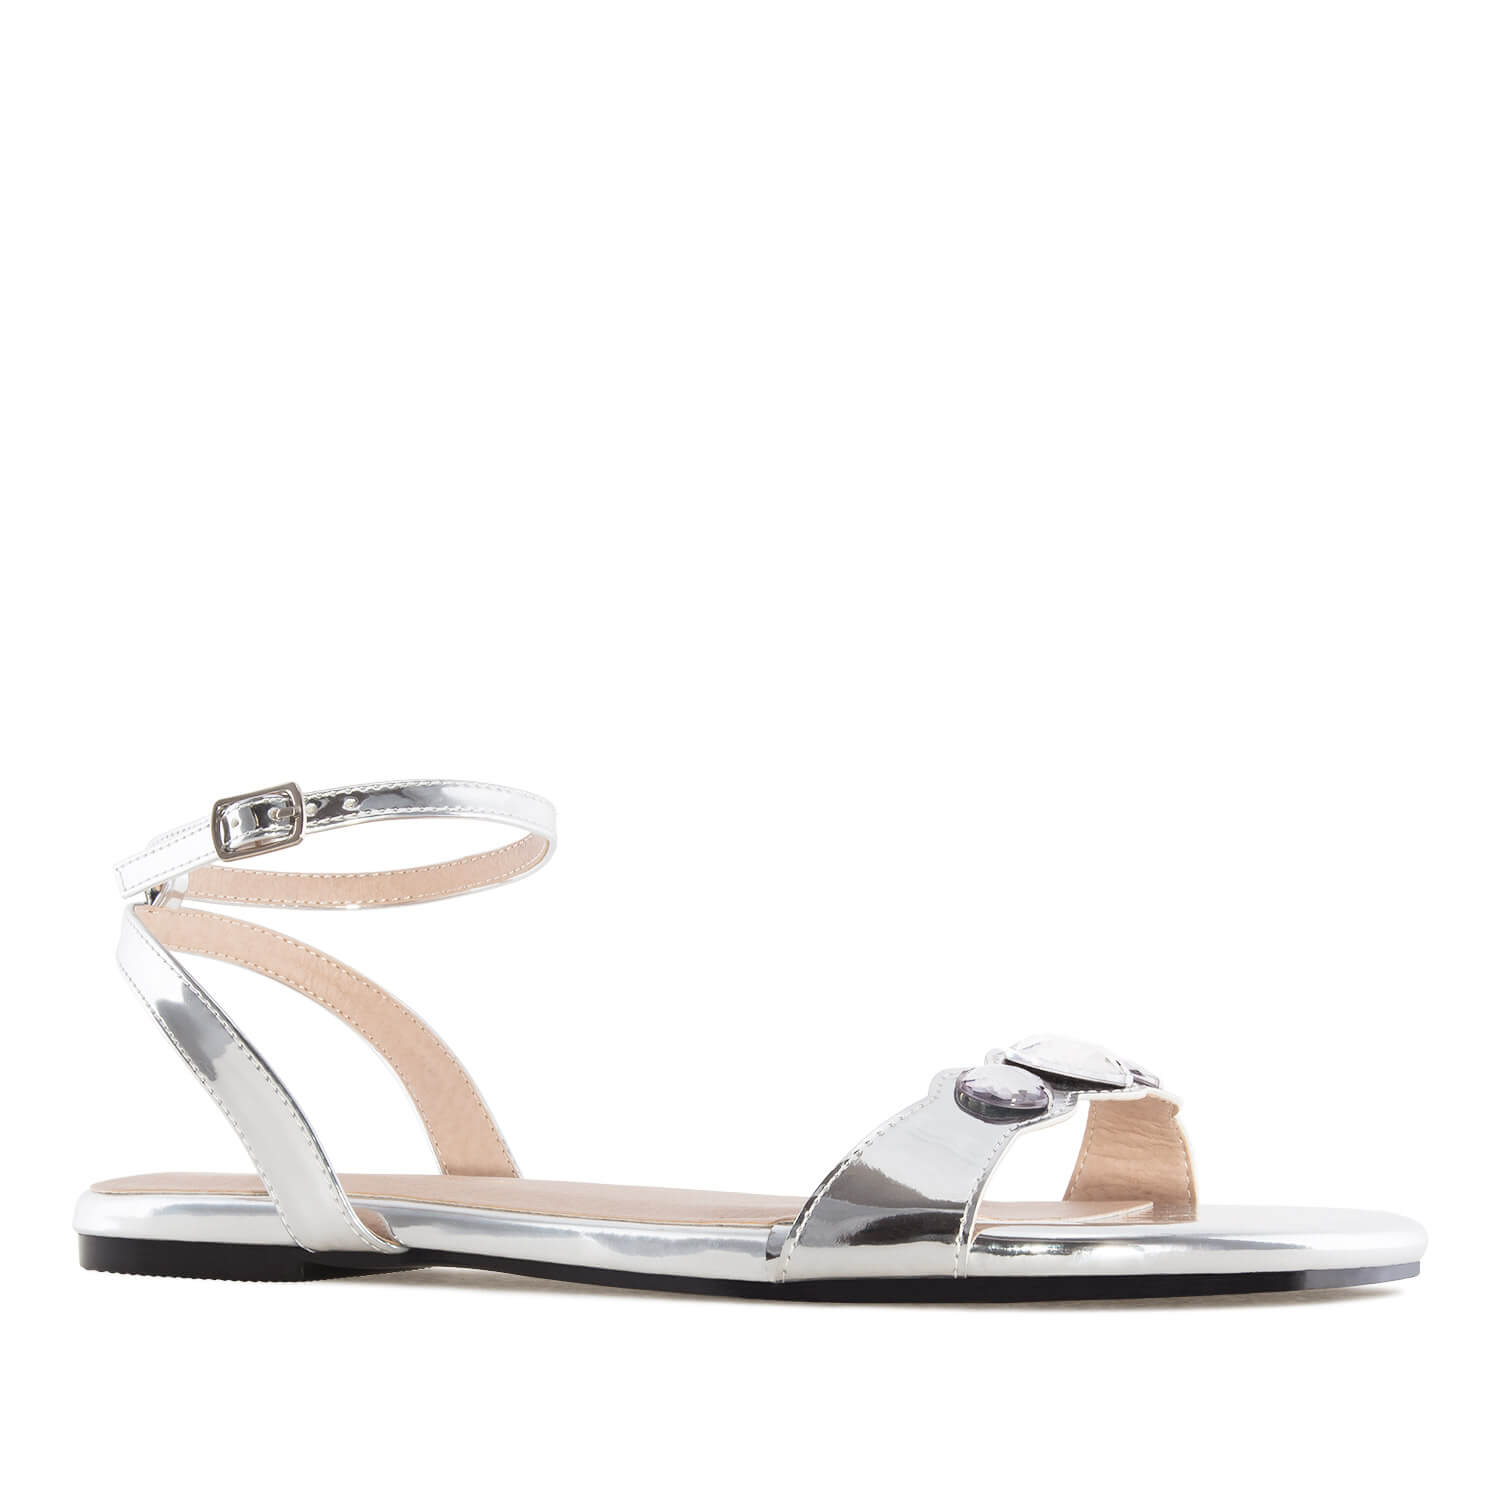 3858737b8 Flat Sandals in Metallic Silver Patent Leather. Discover them!